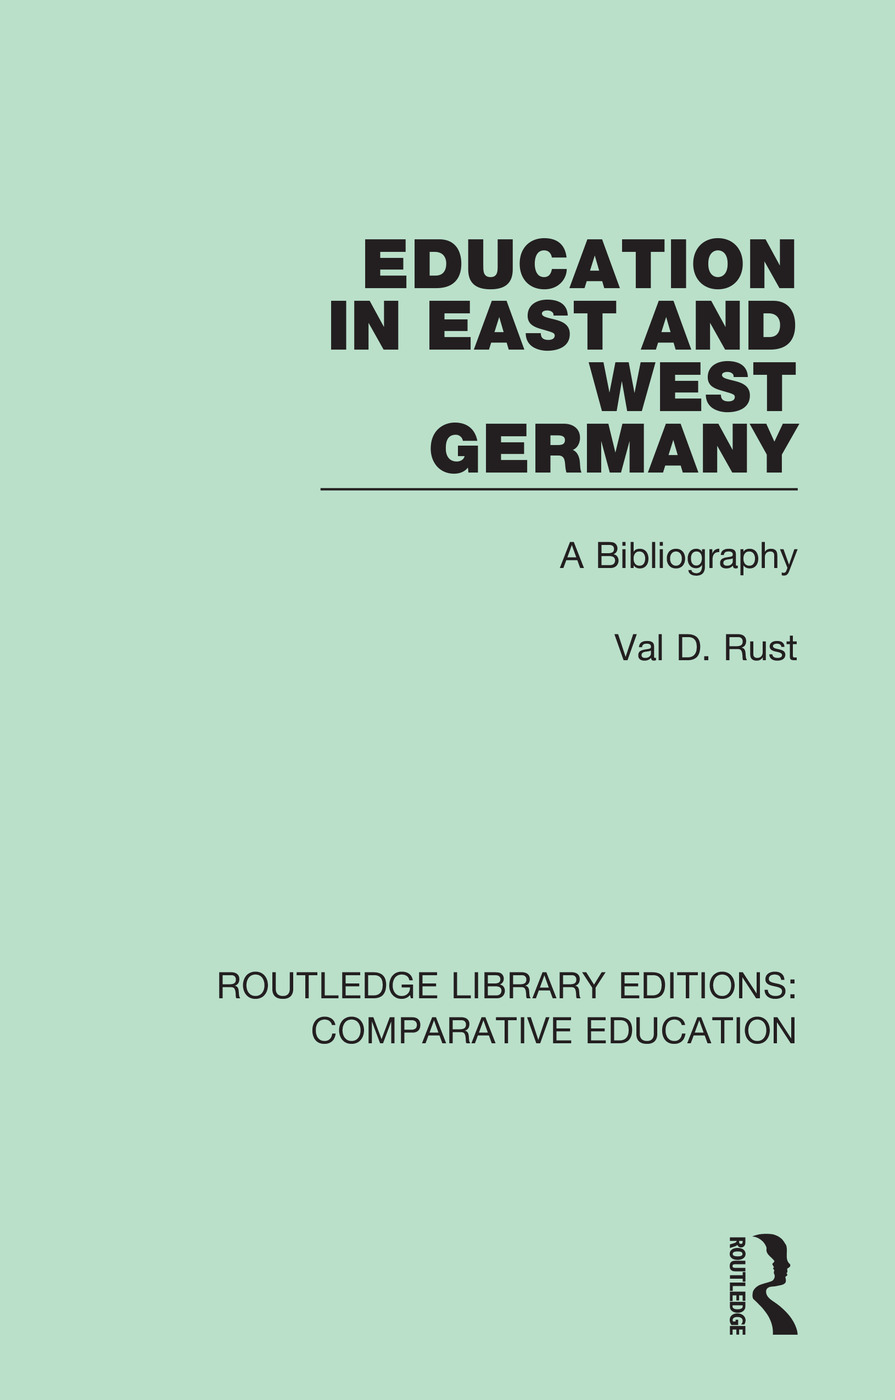 Education in East and West Germany: A Bibliography book cover